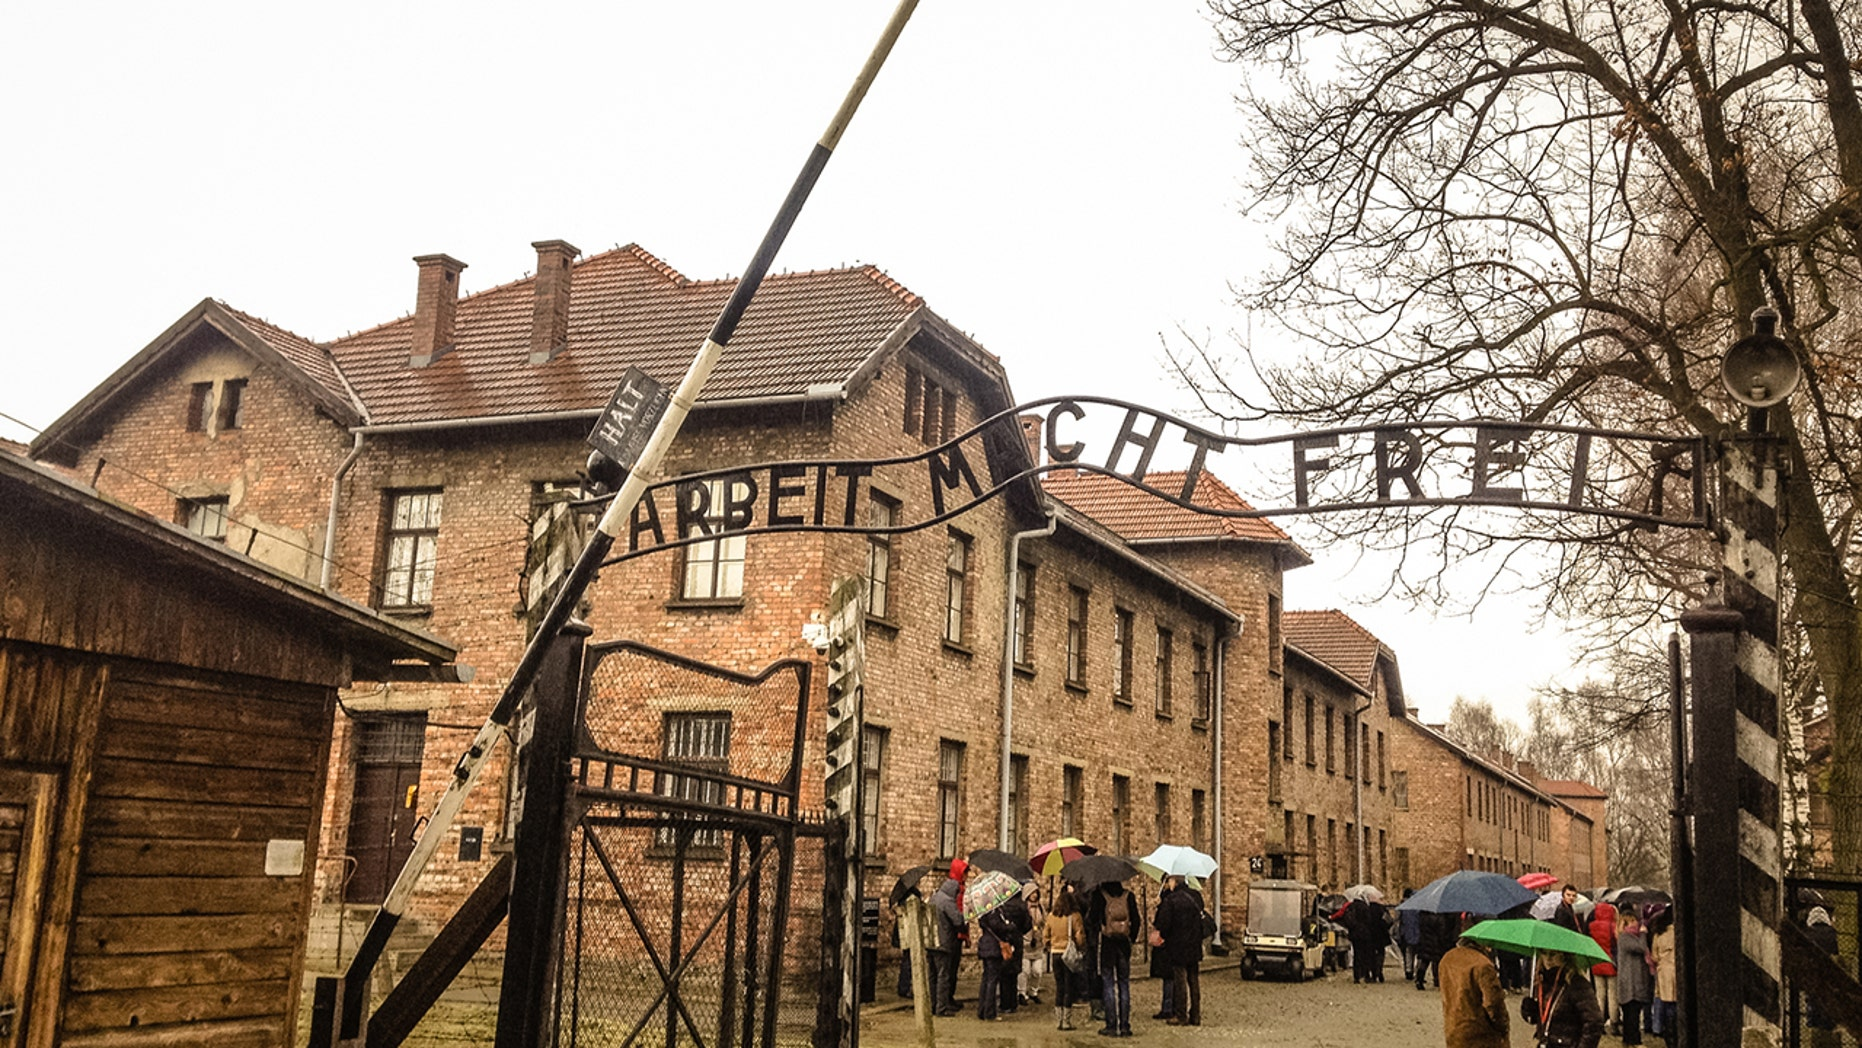 The Auschwitz Memorial on Wednesday urged tourists to be mindful of where they are while visiting the historic site after people have apparently created photo-ops along its railroad track.